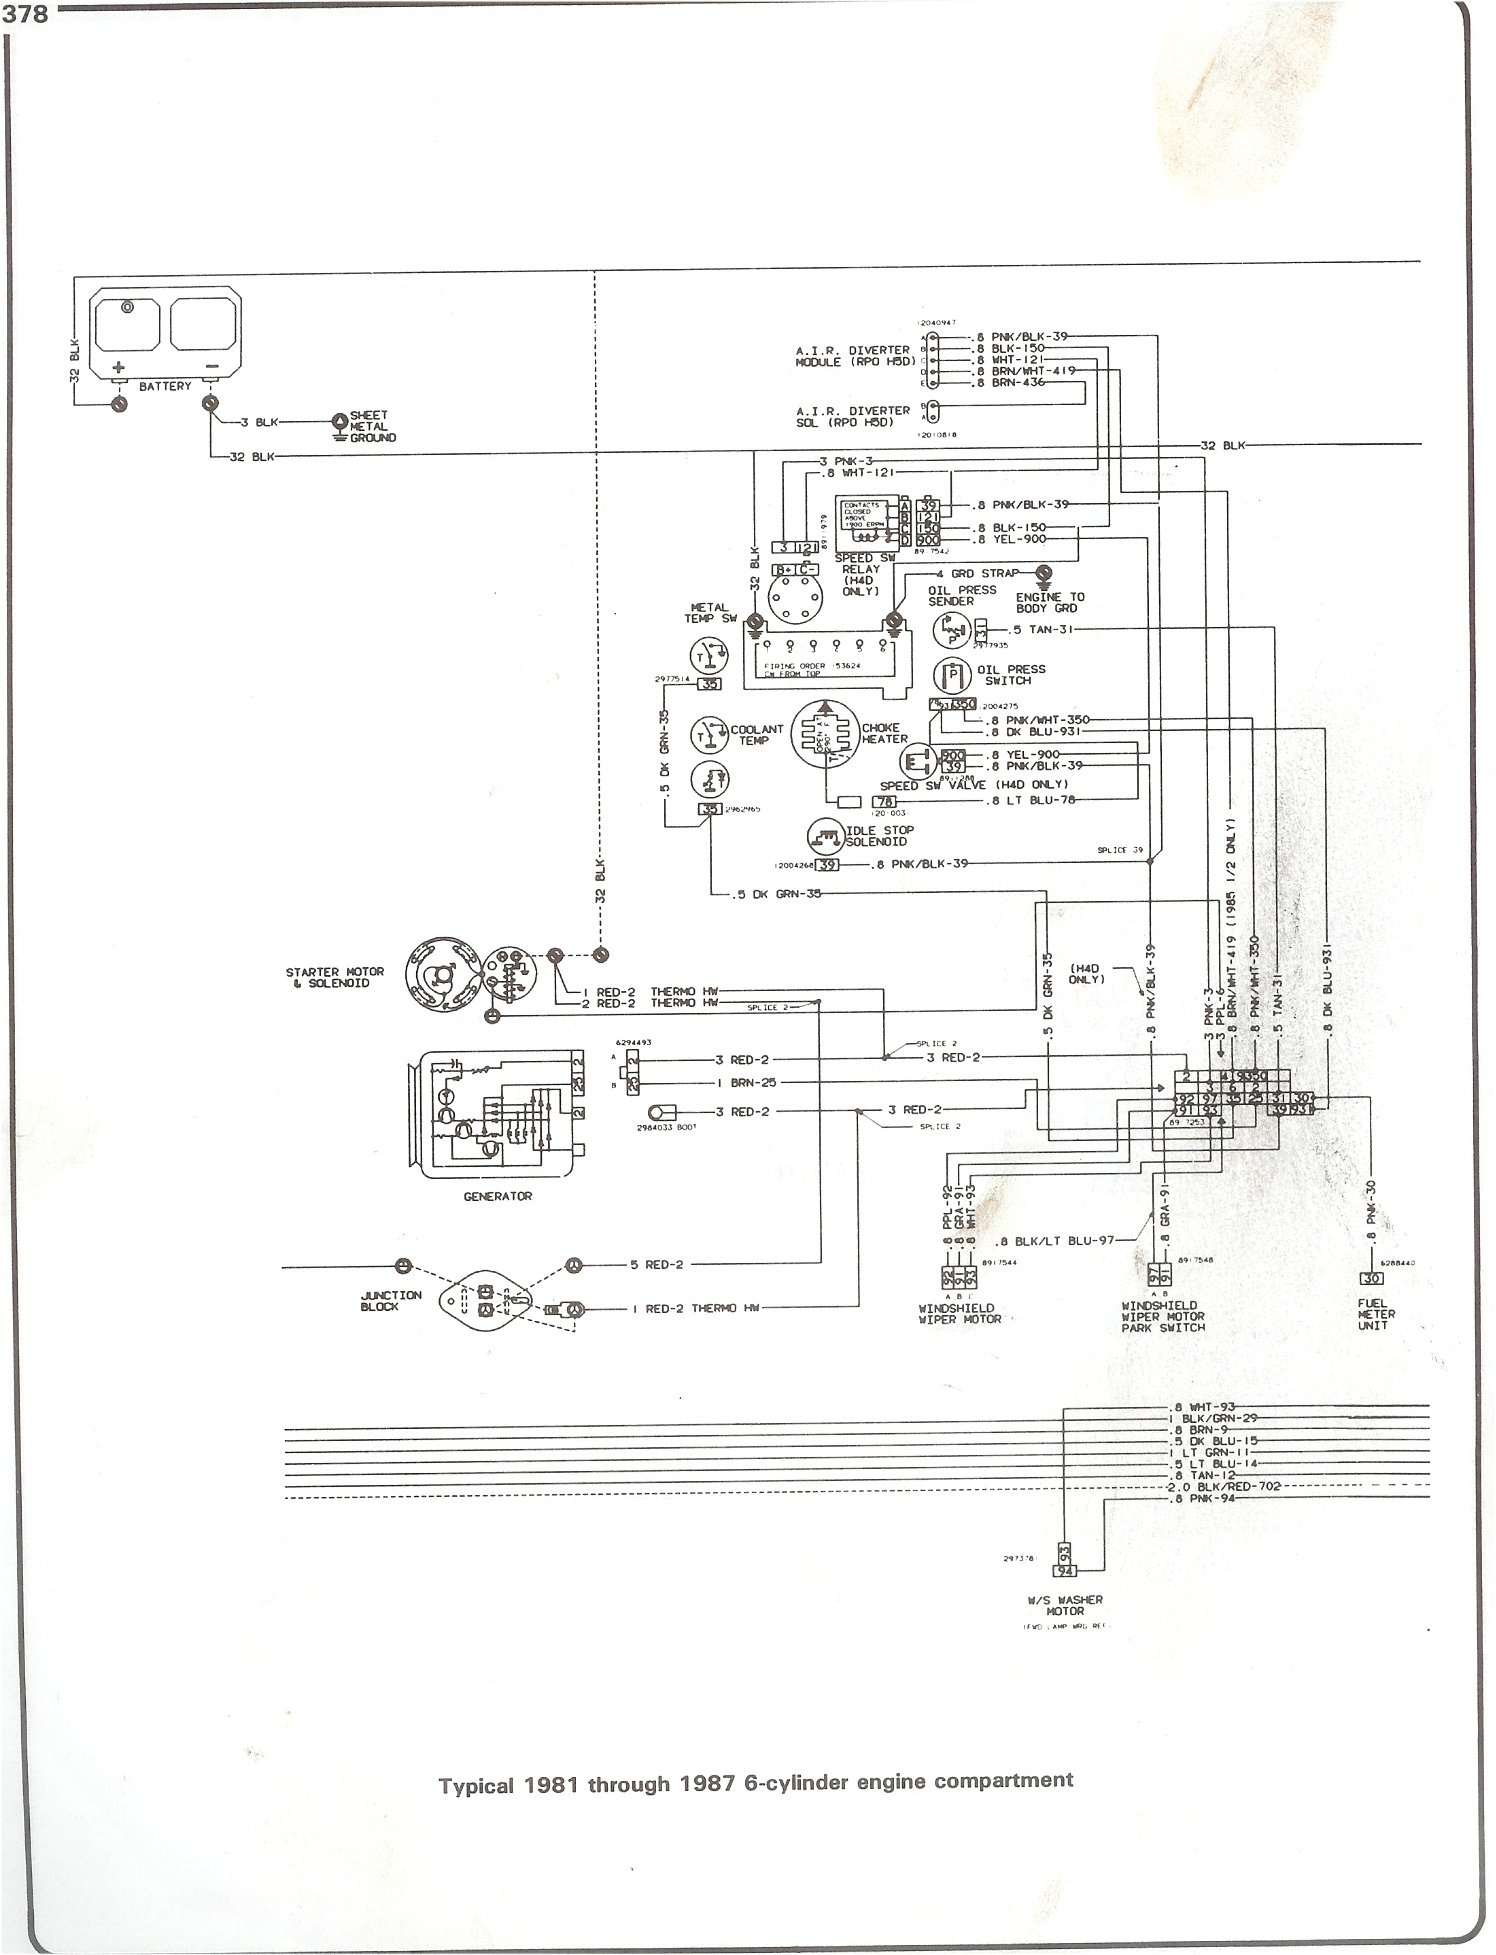 2004 Chevy Suburban Wiring Diagrams Archive Of Automotive Chevrolet Fuse Diagram 2003 Opinions About U2022 Rh Voterid Co